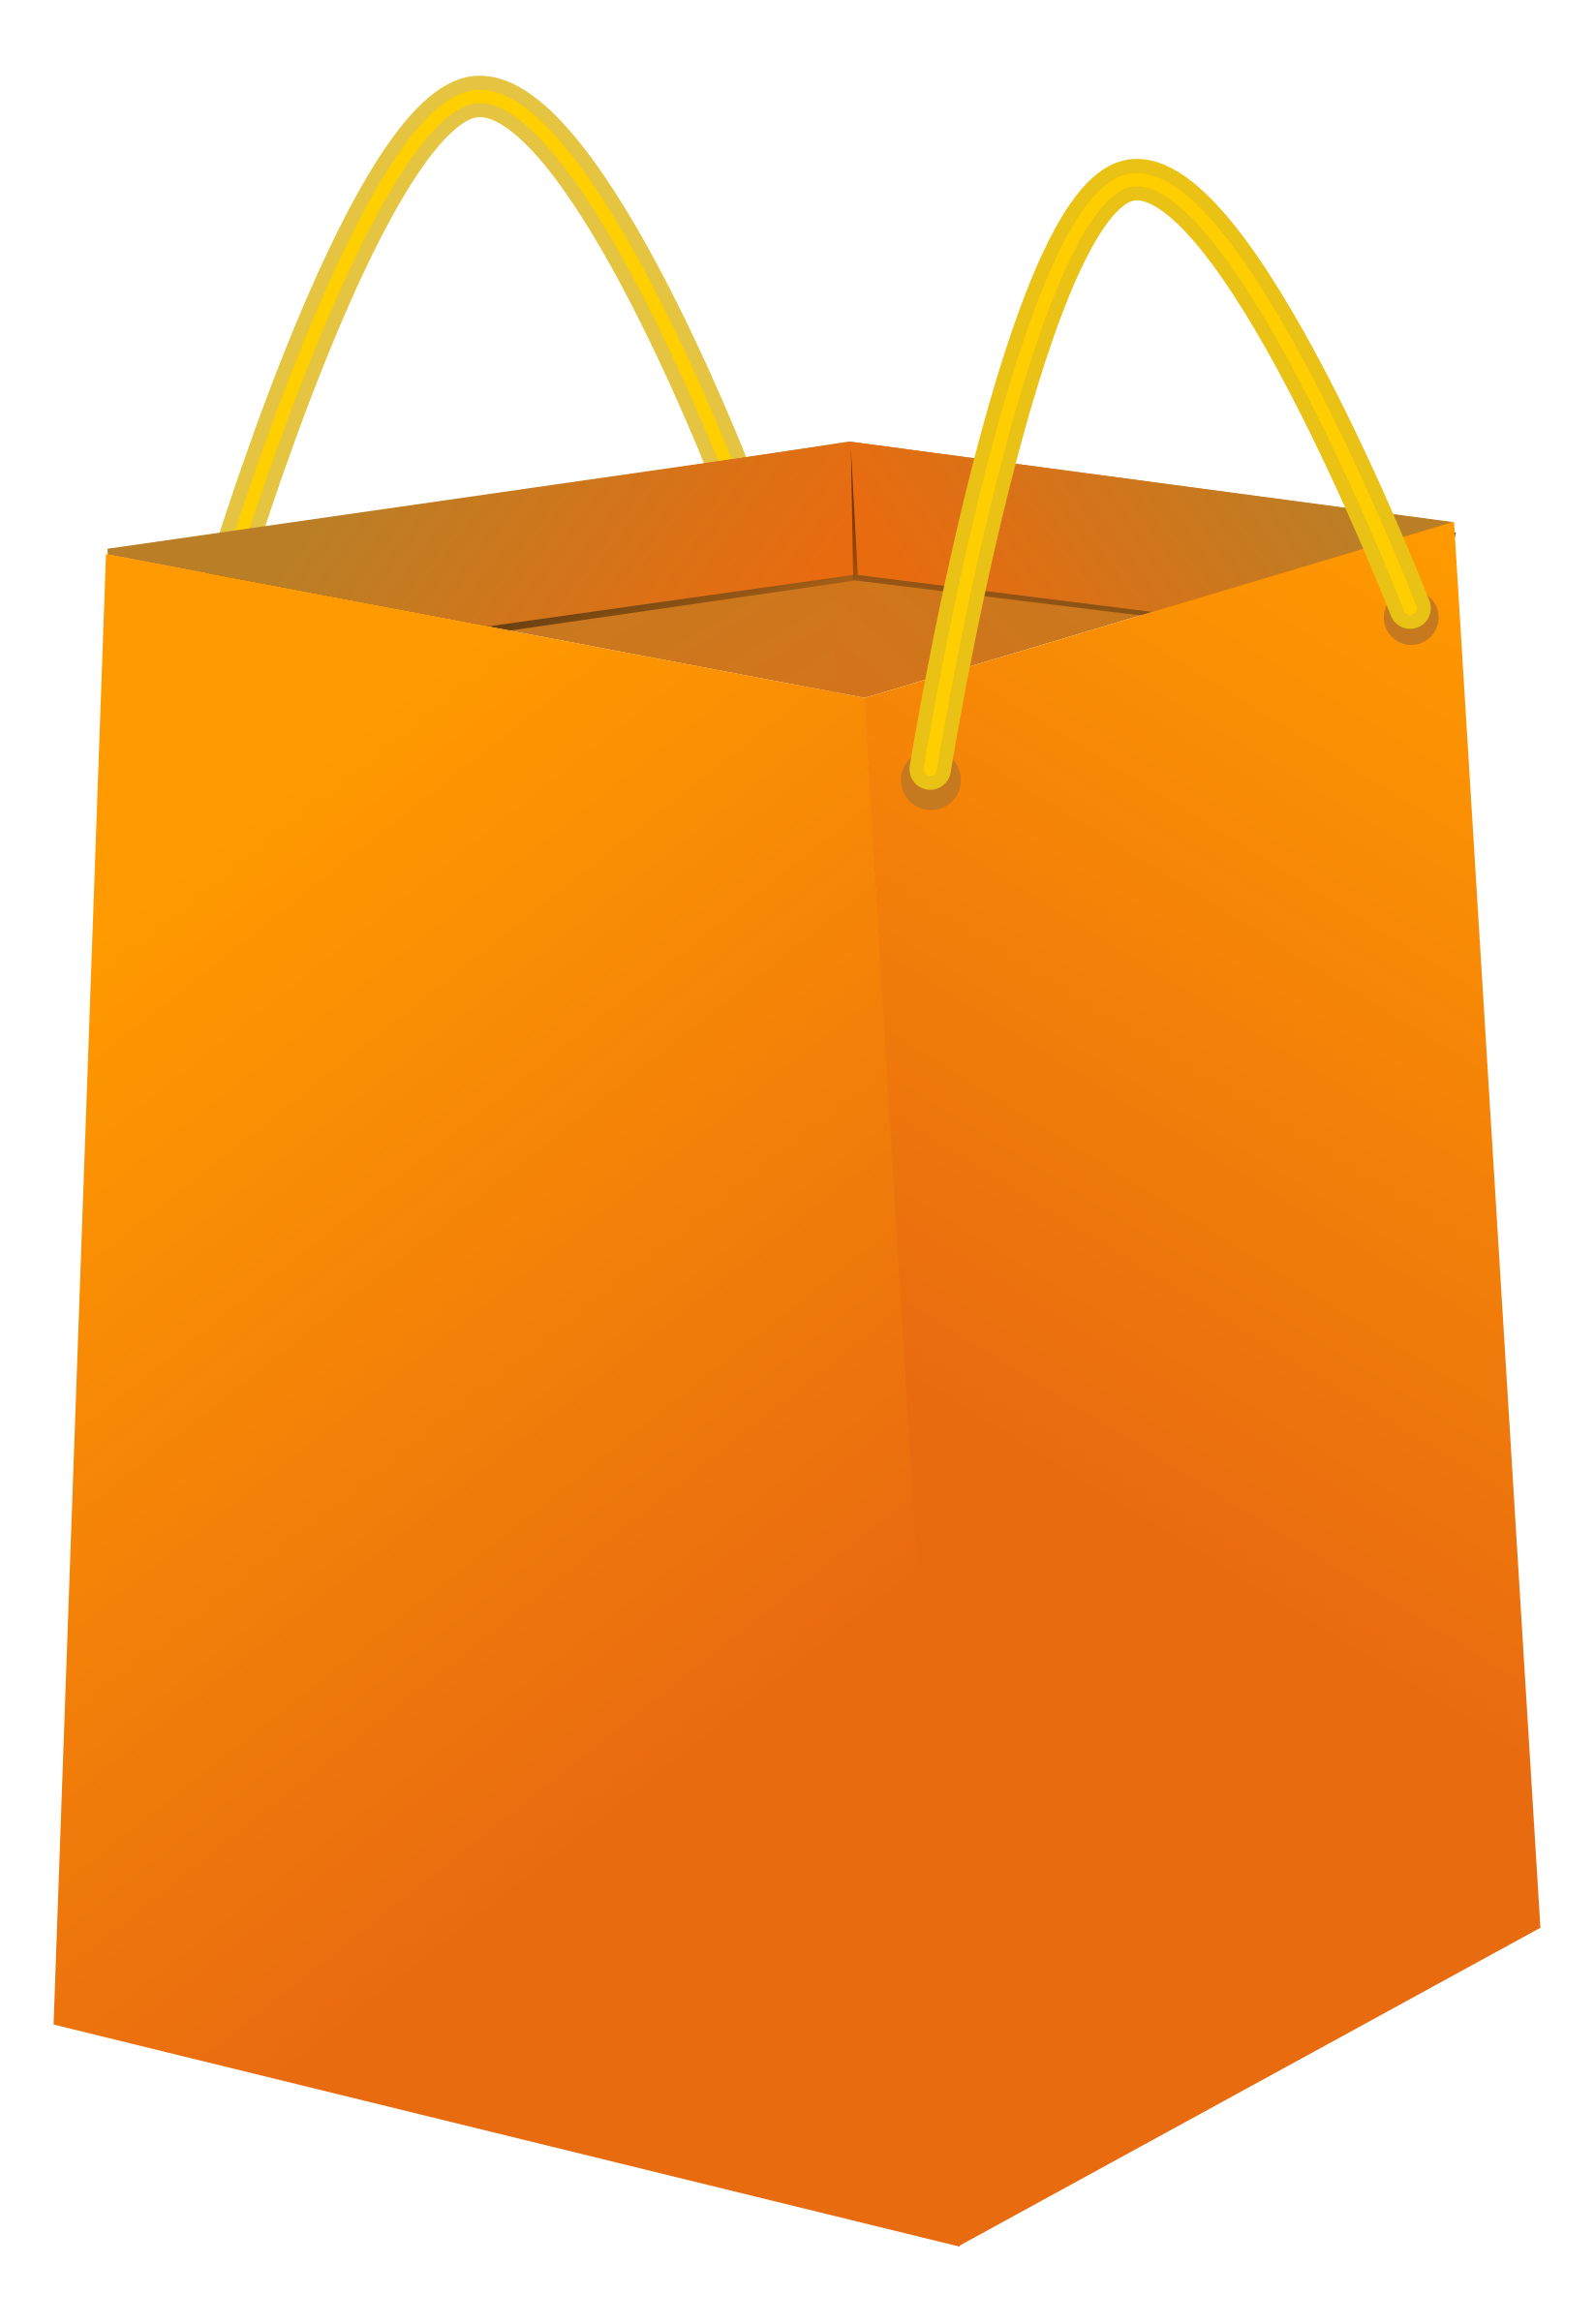 Shopping bag by szymonraj